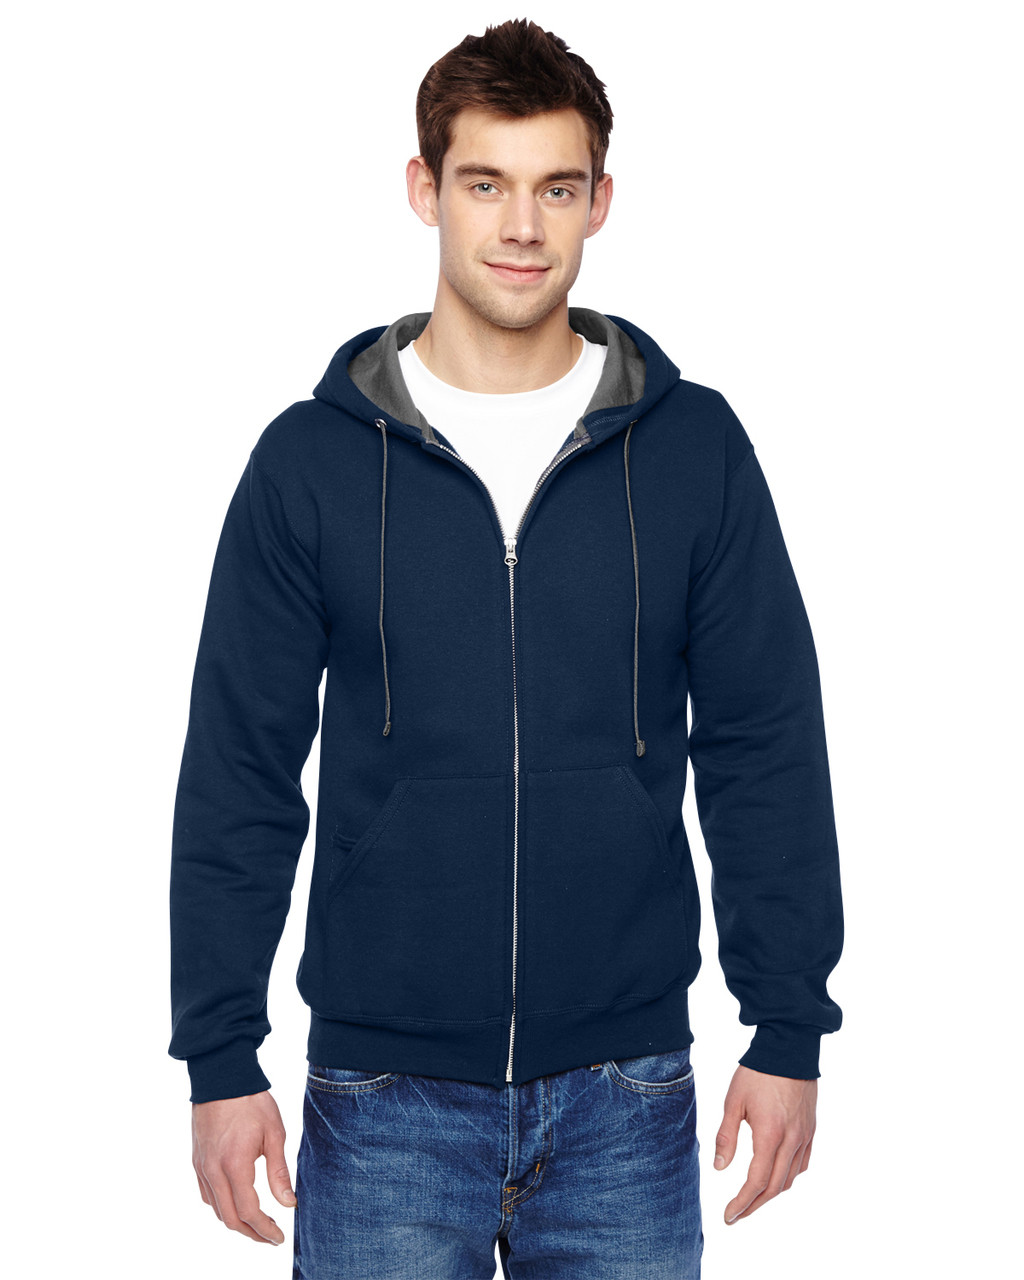 Navy - SF73R Fruit Of The Loom Softspun Full-Zip Hooded Sweatshirt | Blankclothing.ca